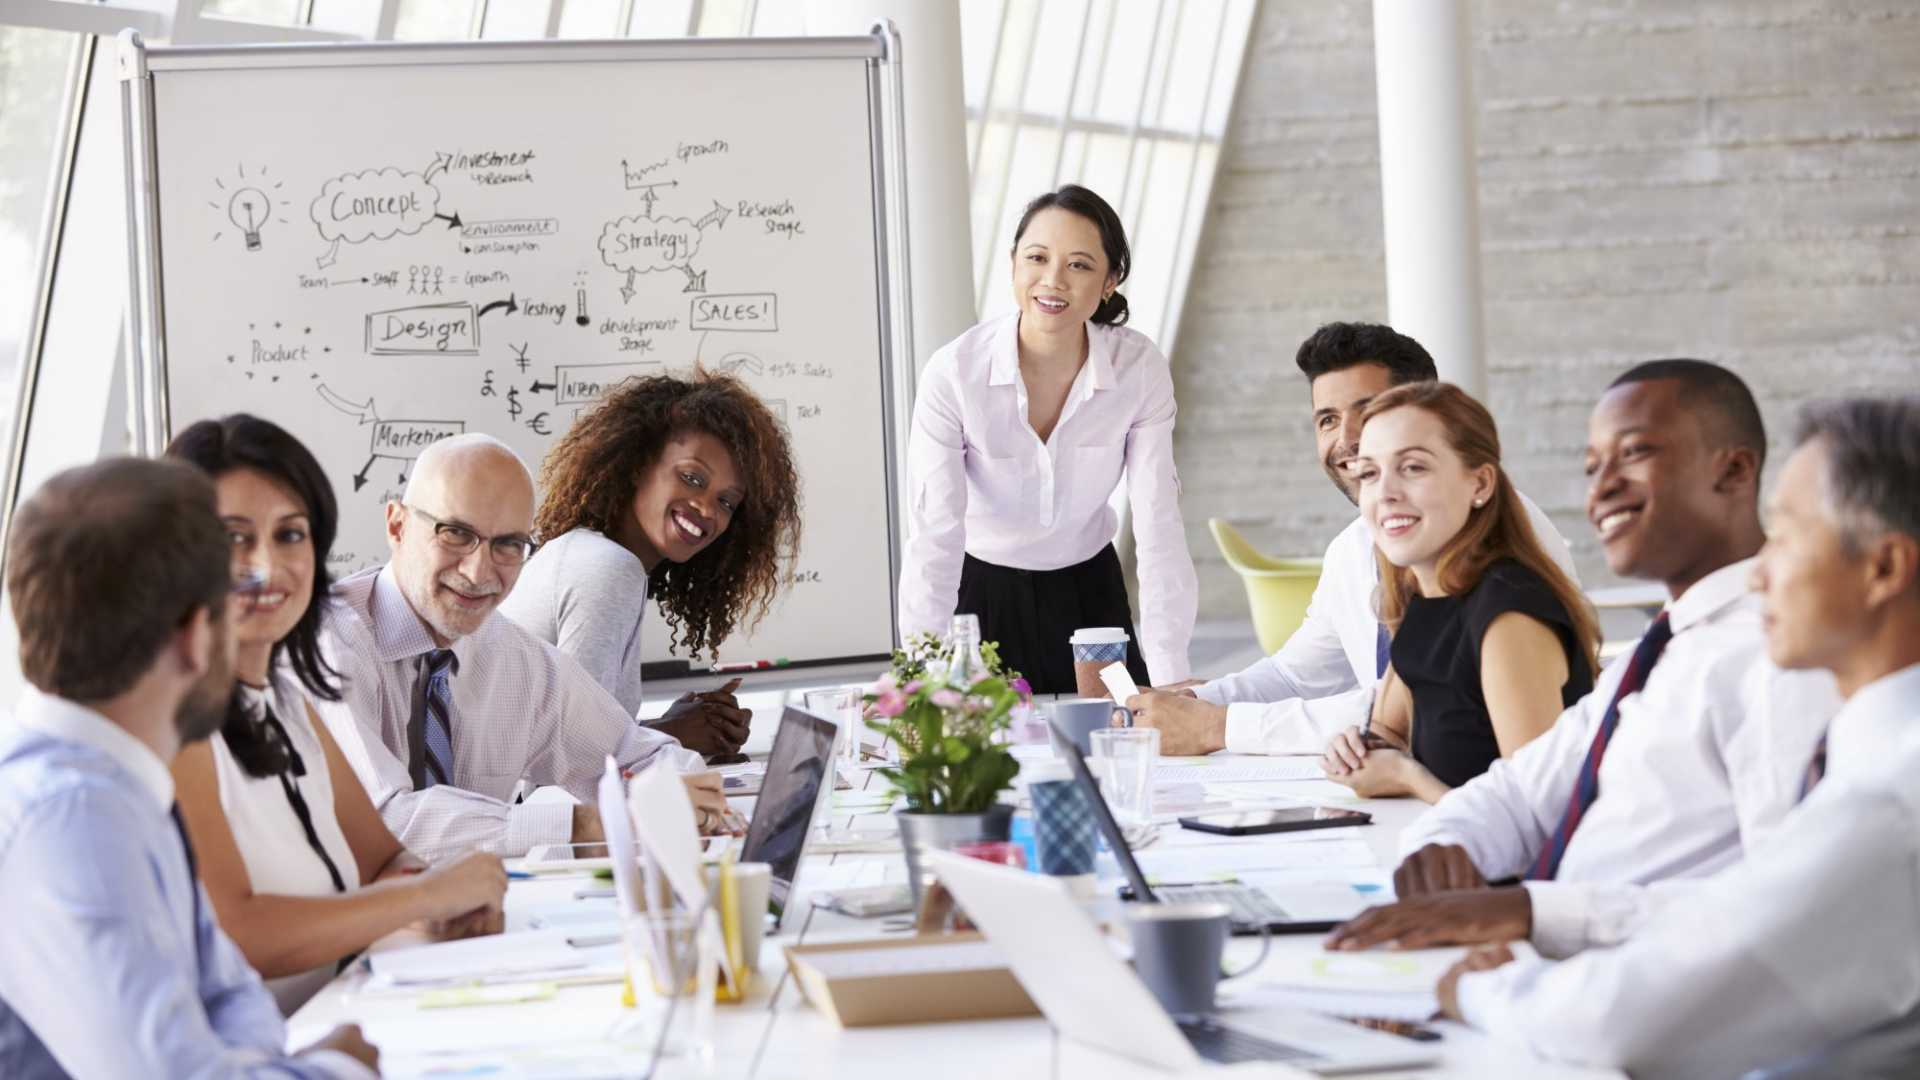 What Are the Best Ways to Build Candor on a Small Team?